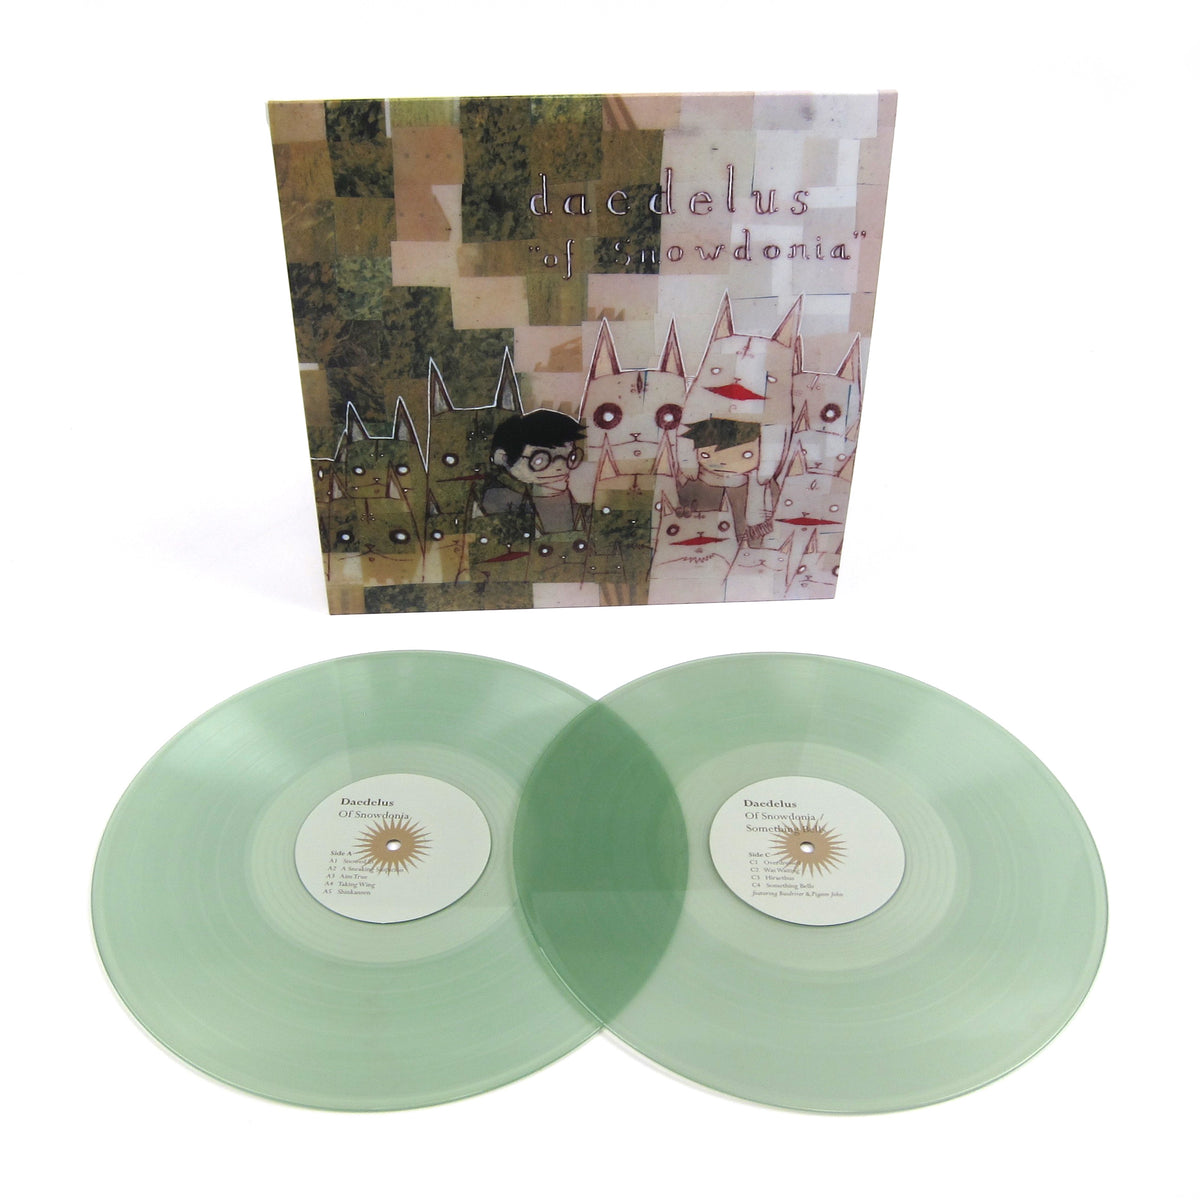 Daedelus: Of Snowdonia & Something Bells (Colored Vinyl) Vinyl 2LP